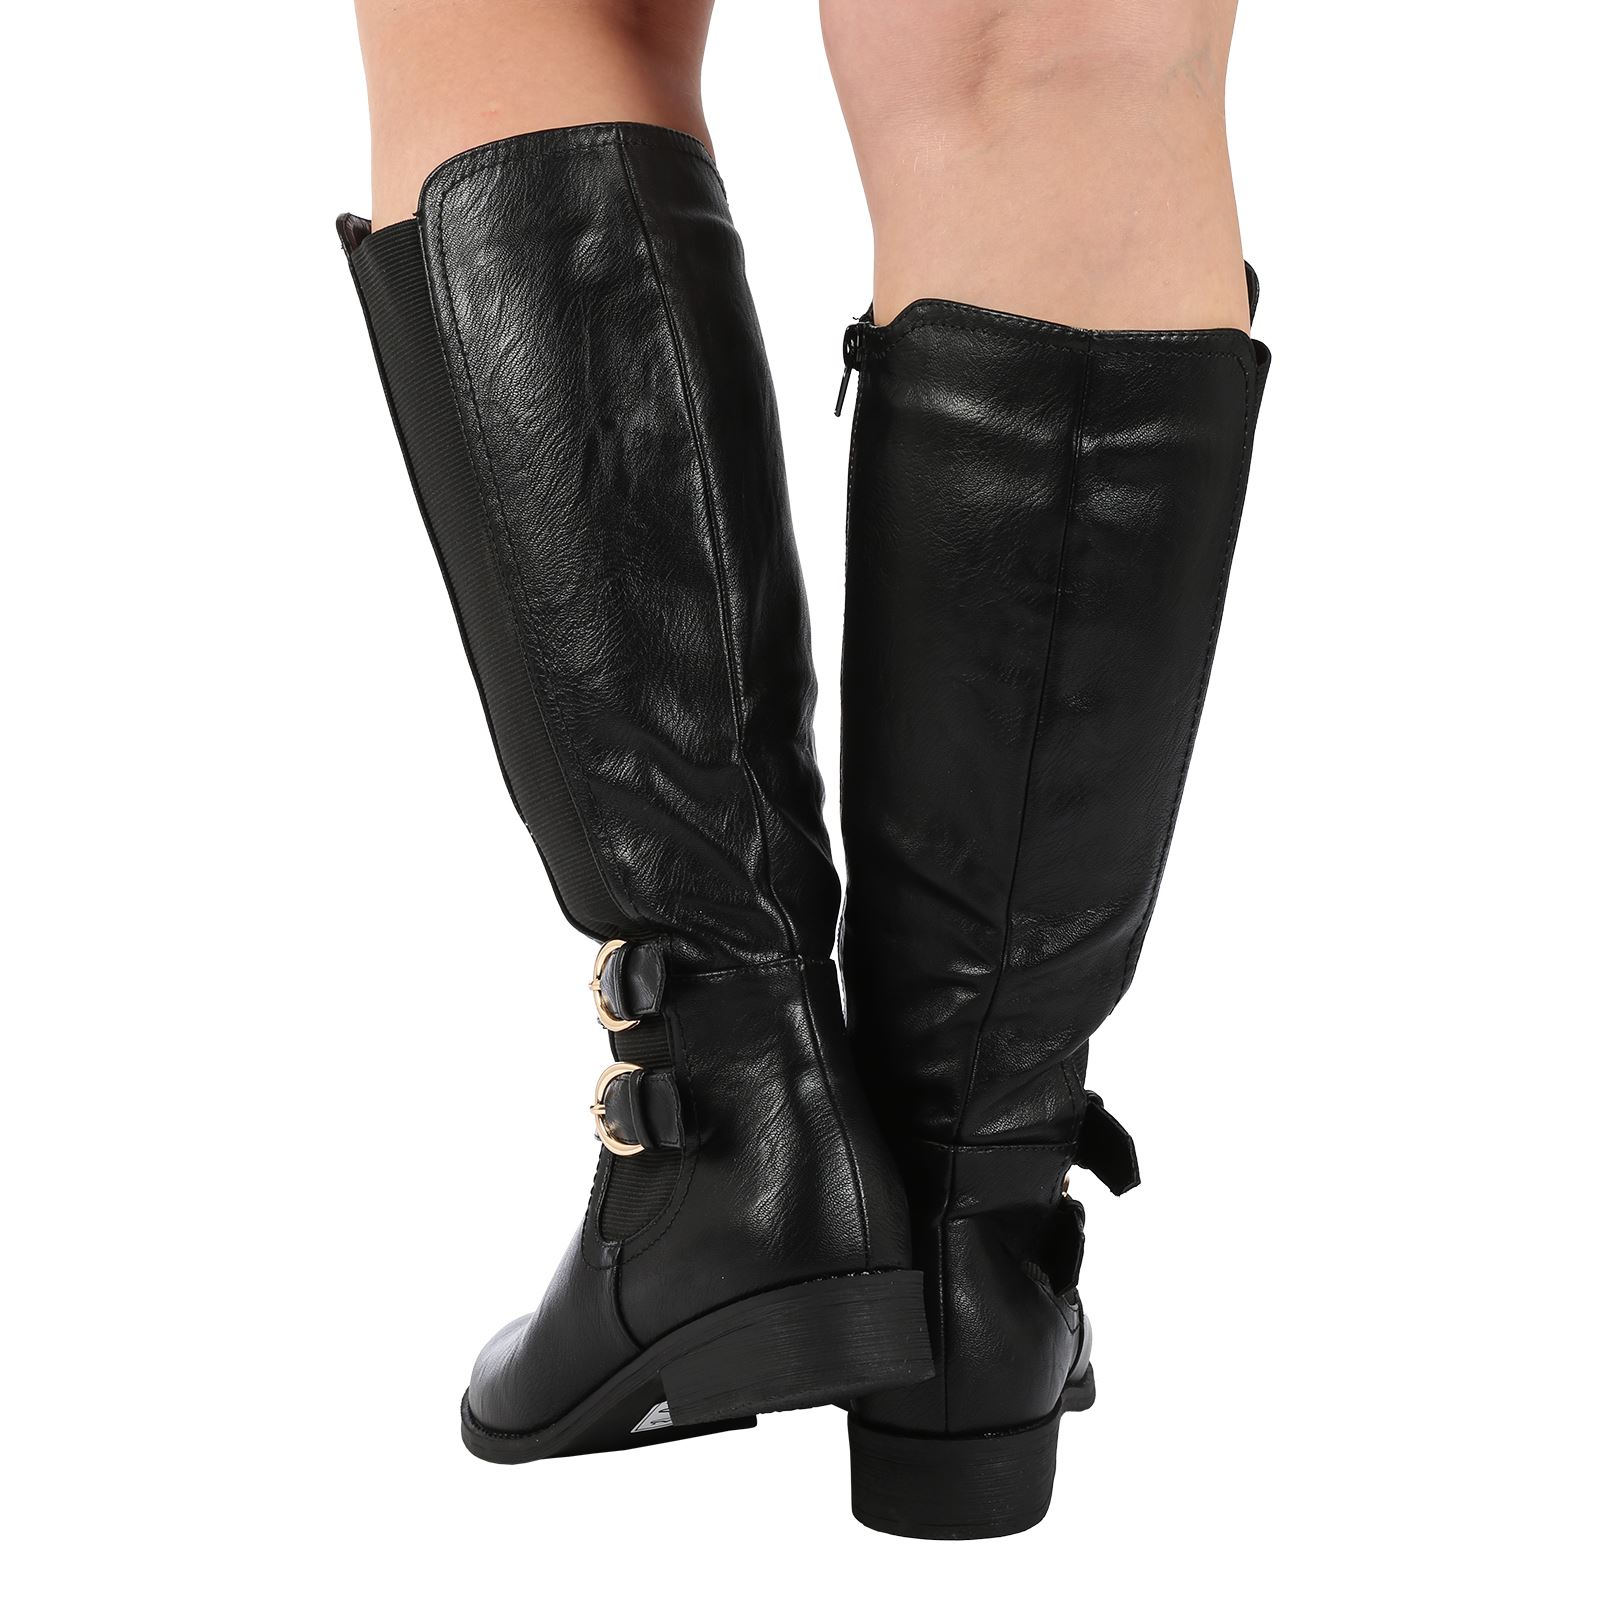 Excellent Womens Fashion Knee High Riding Winter Boots  Size  55